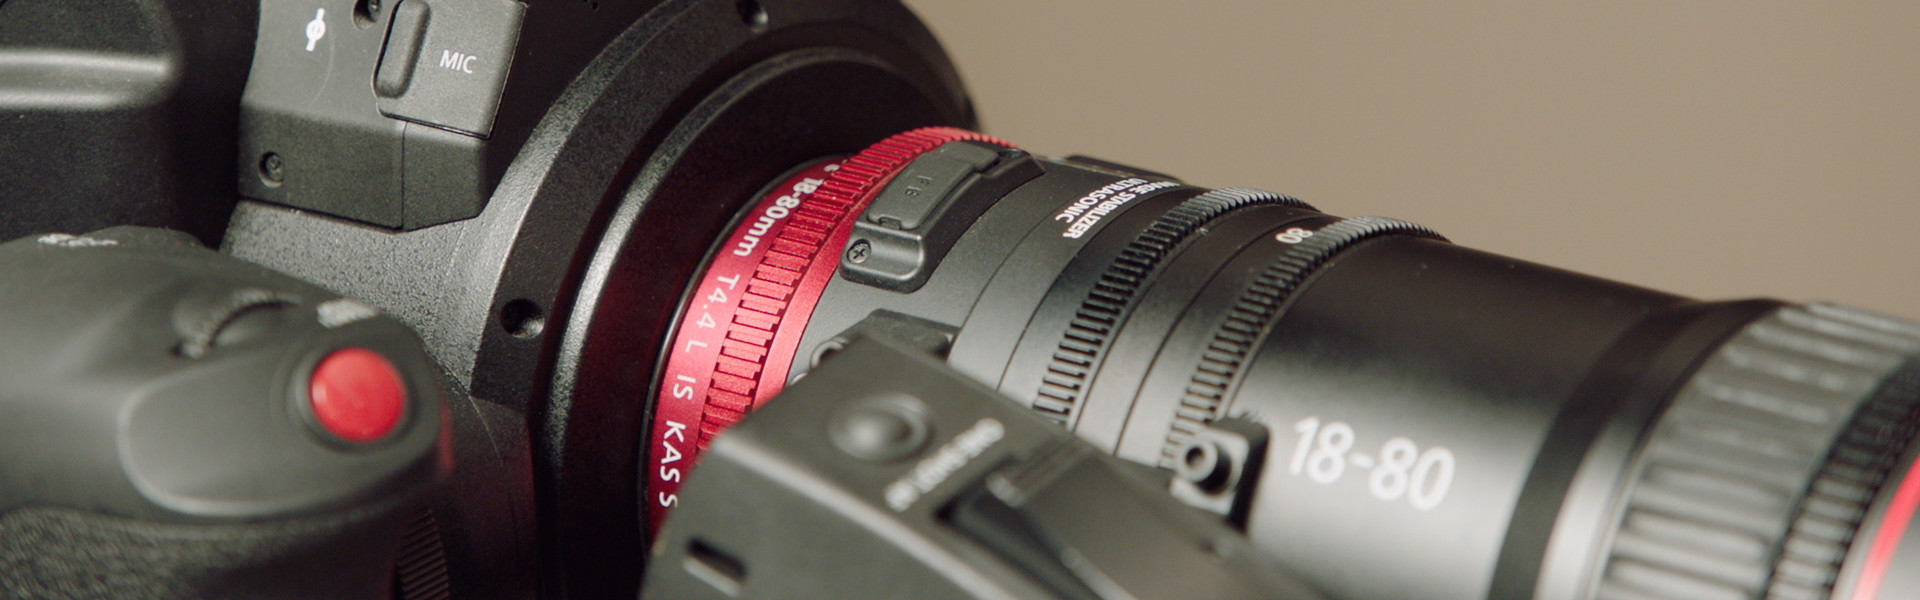 Header image for article At the Bench: Back Focusing the Canon 18-80mm Servo Zoom